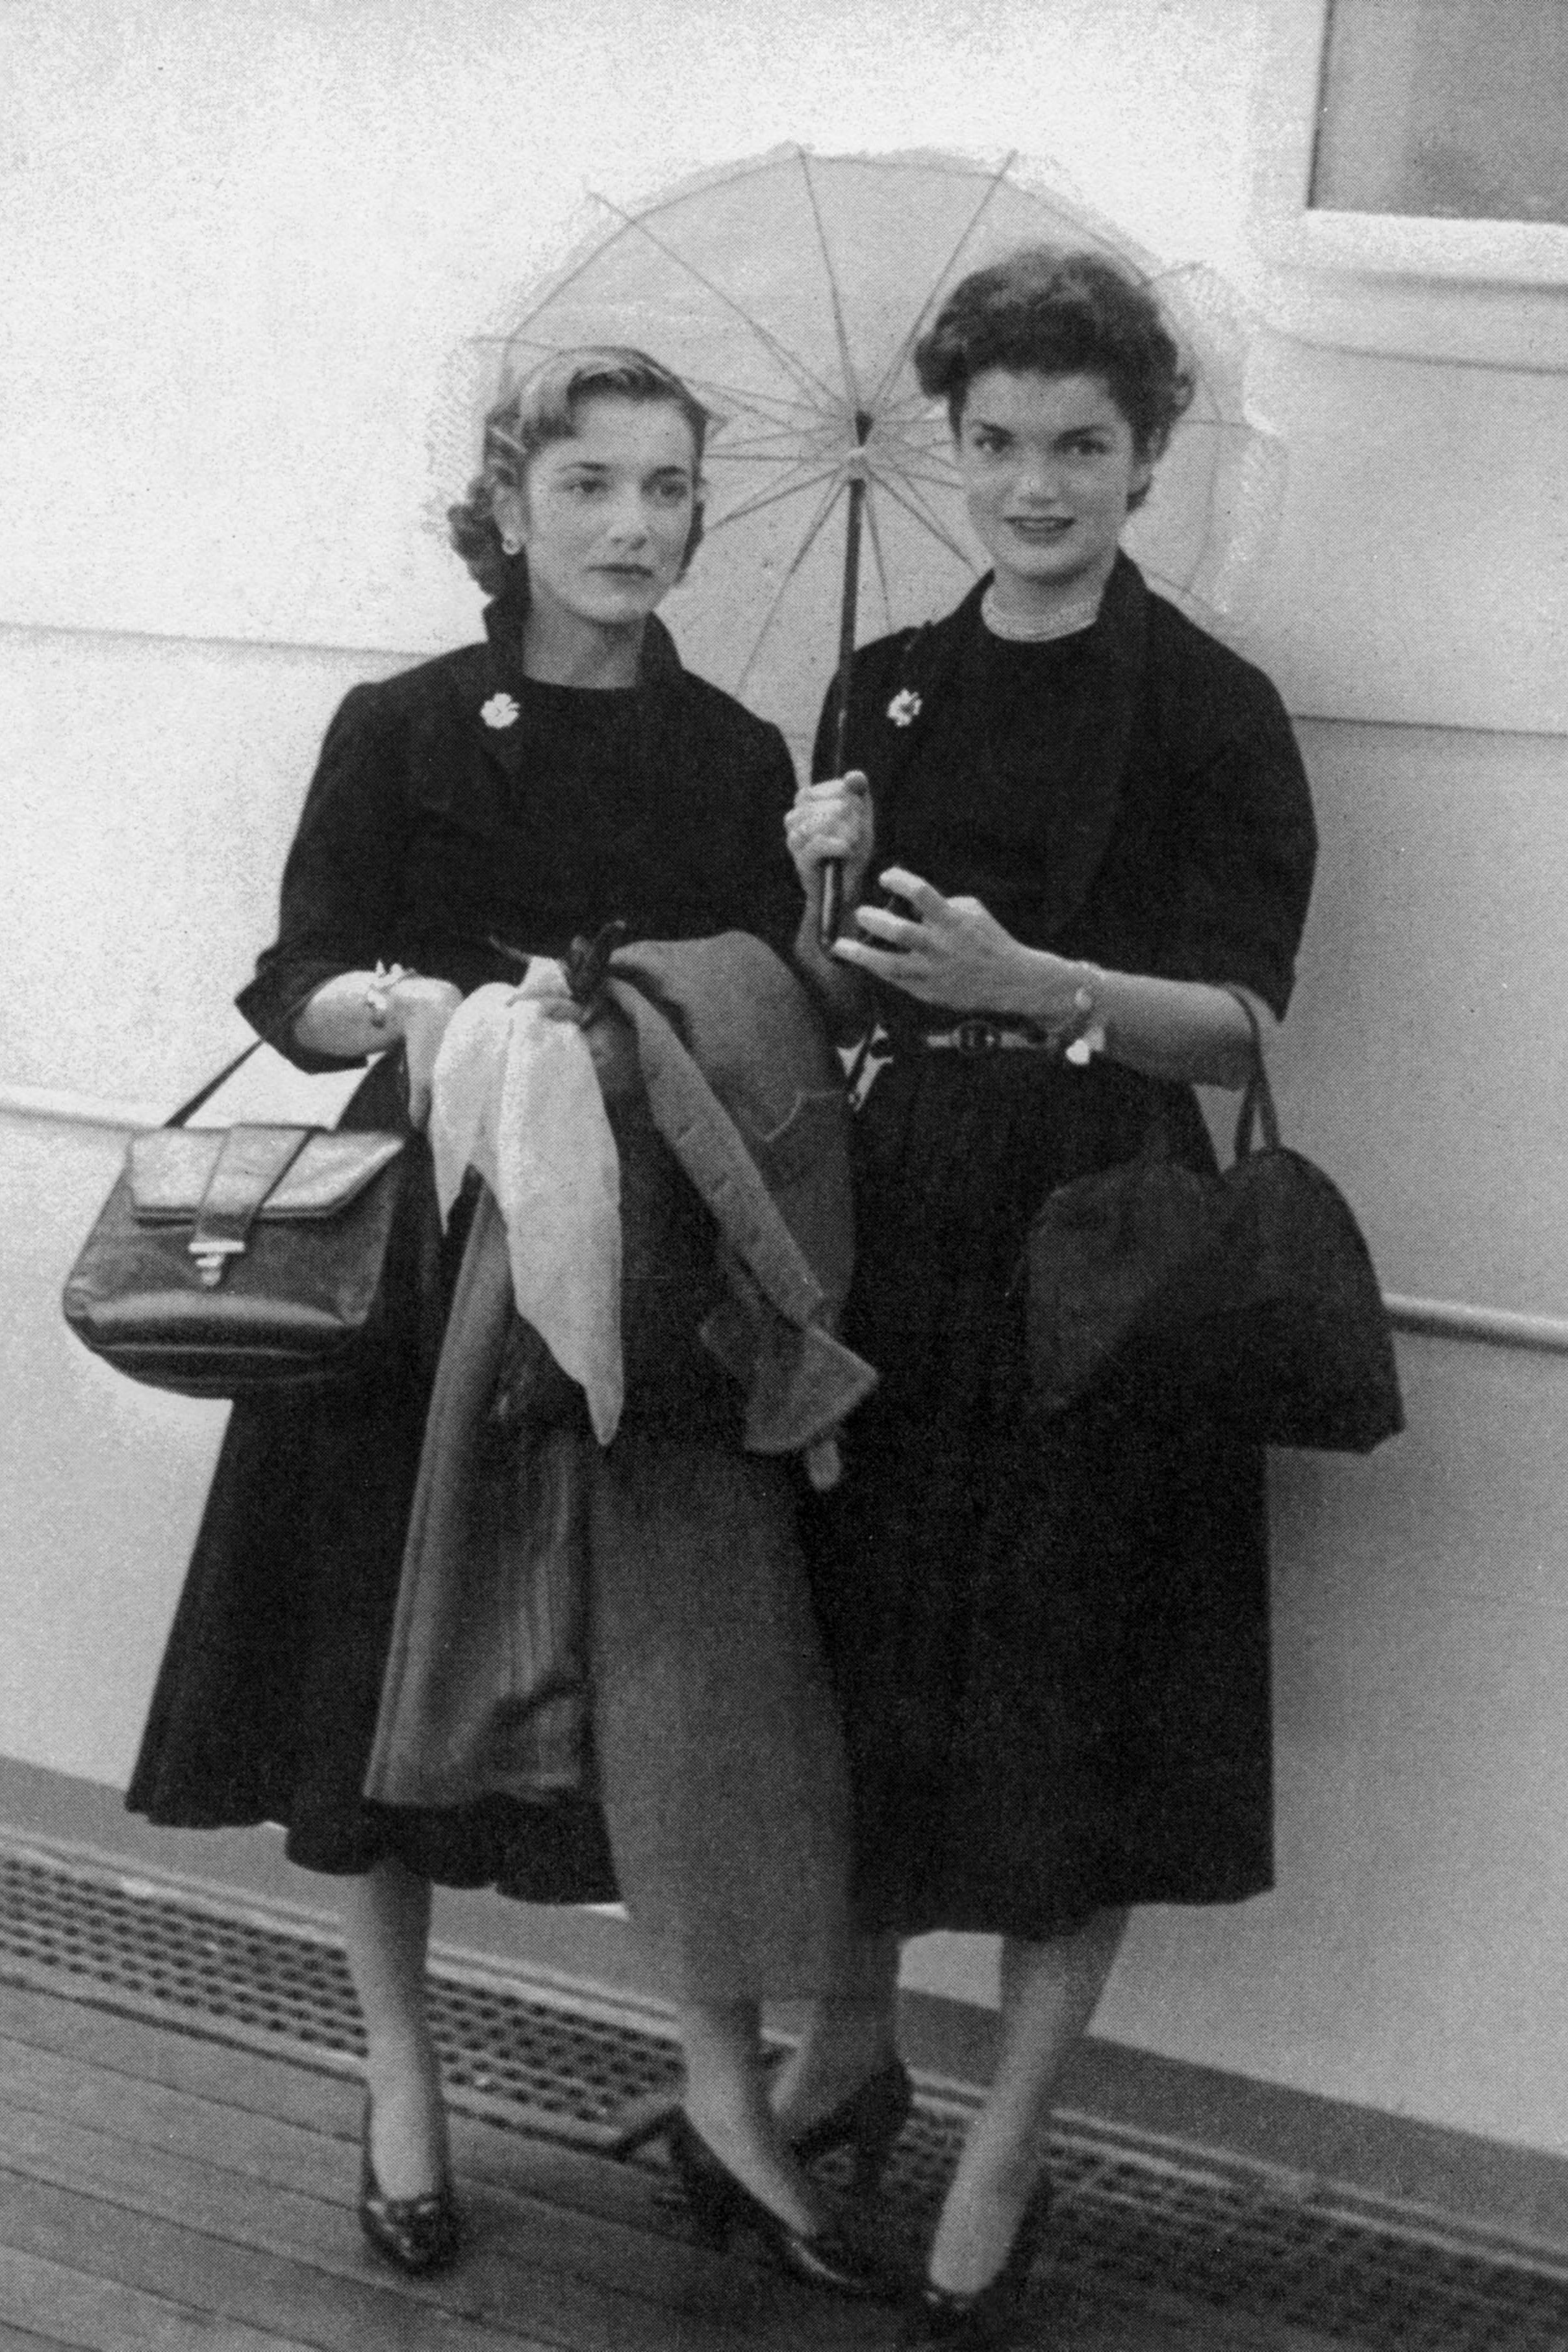 Jaqueline and her sister Lee are photographed after returning from studying in Europe.